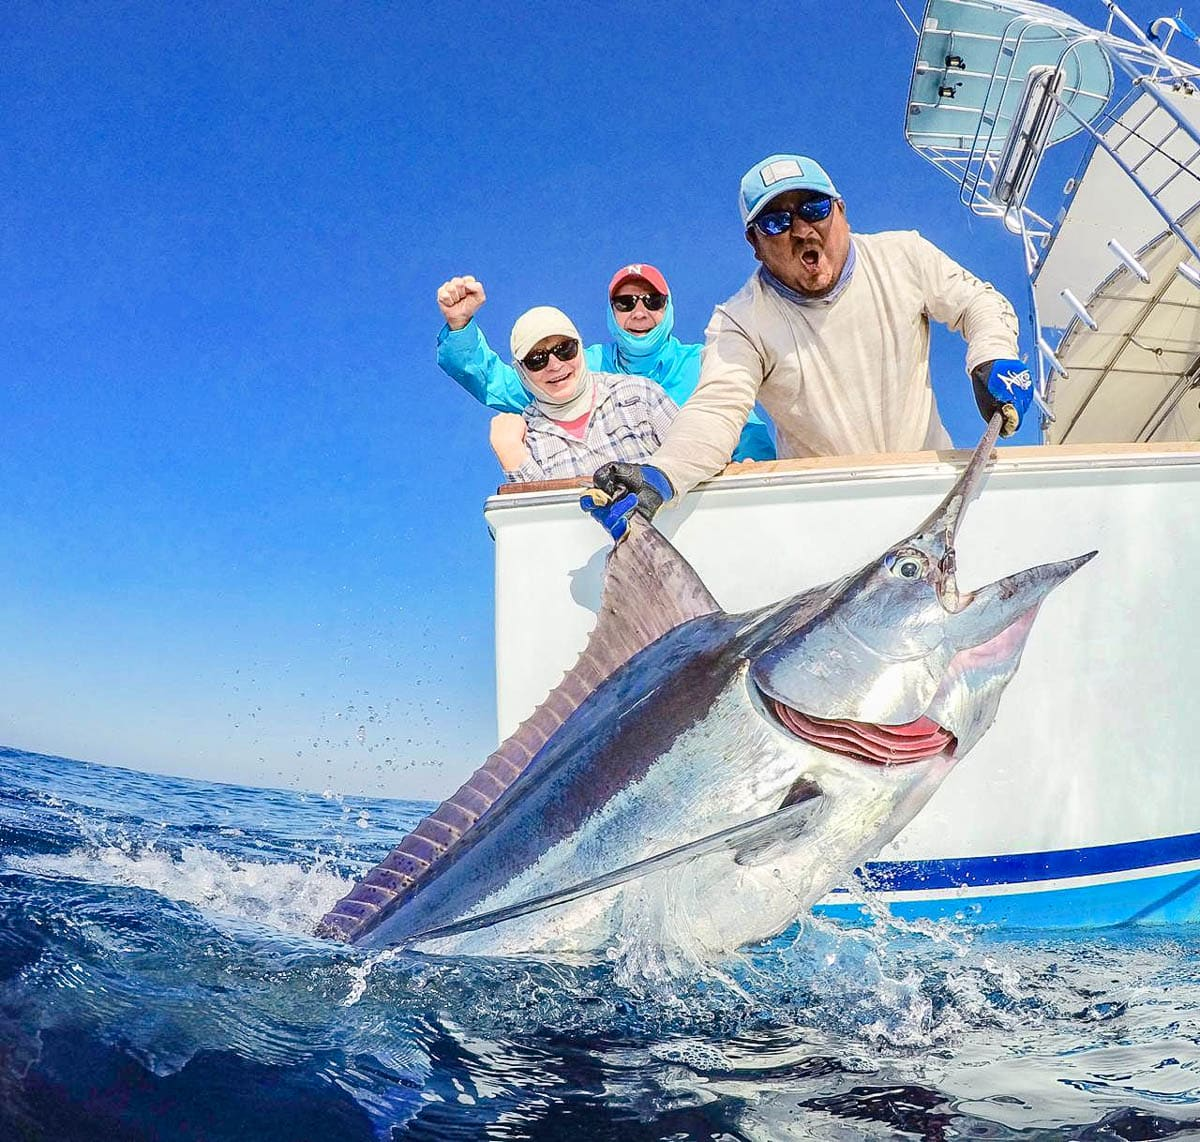 Costa Rica blue marlin